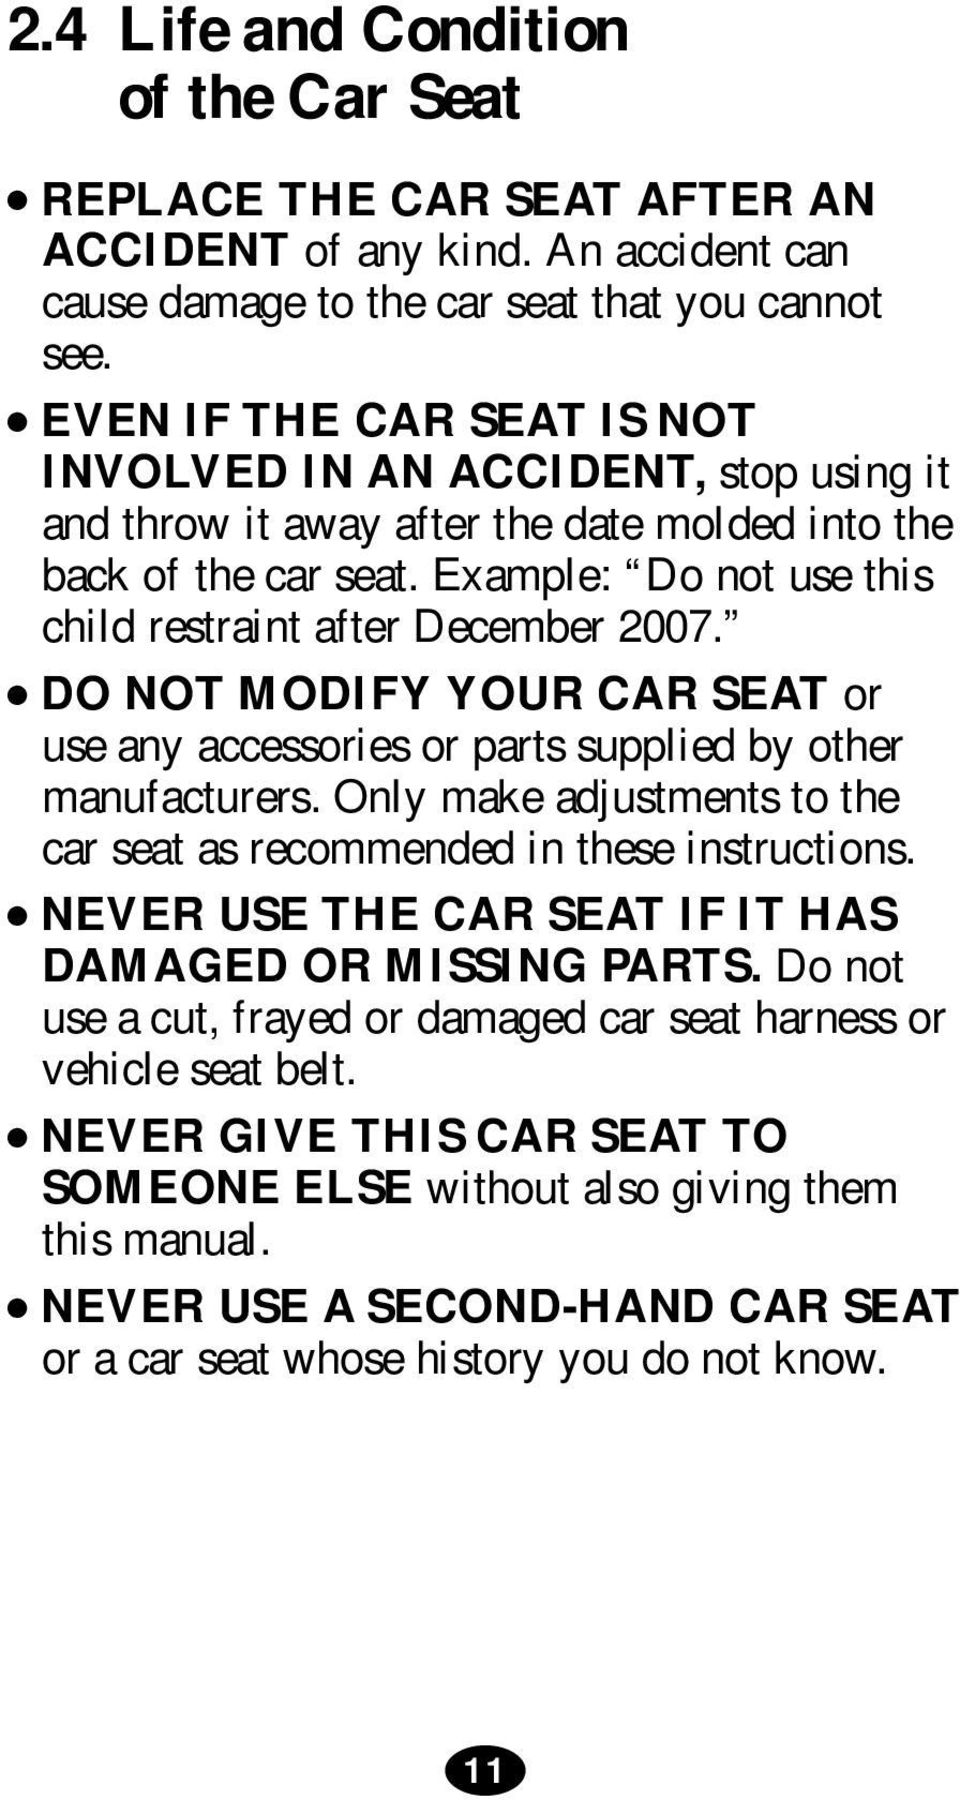 DO NOT MODIFY YOUR CAR SEAT or use any accessories or parts supplied by other manufacturers. Only make adjustments to the car seat as recommended in these instructions.